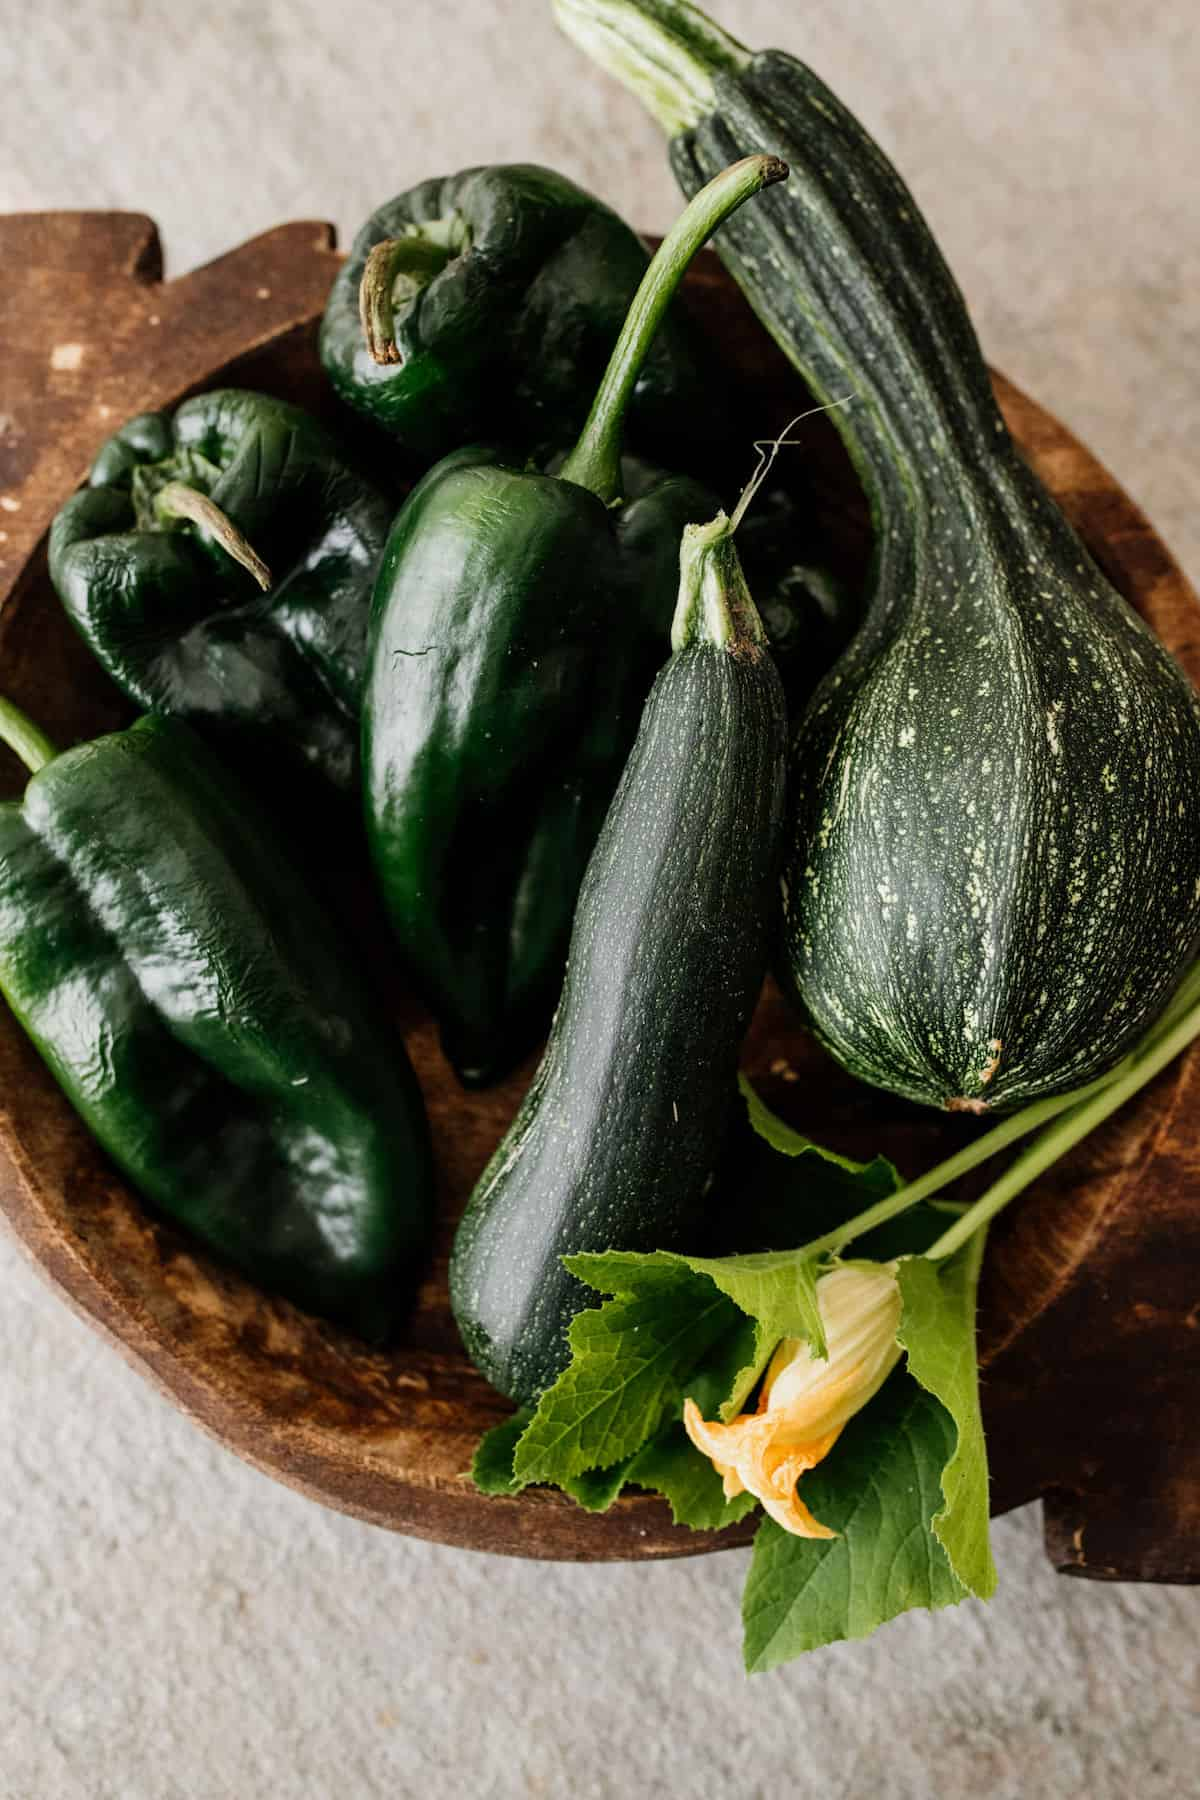 a brown wooden bowl filled with zucchini and poblanos from the garden